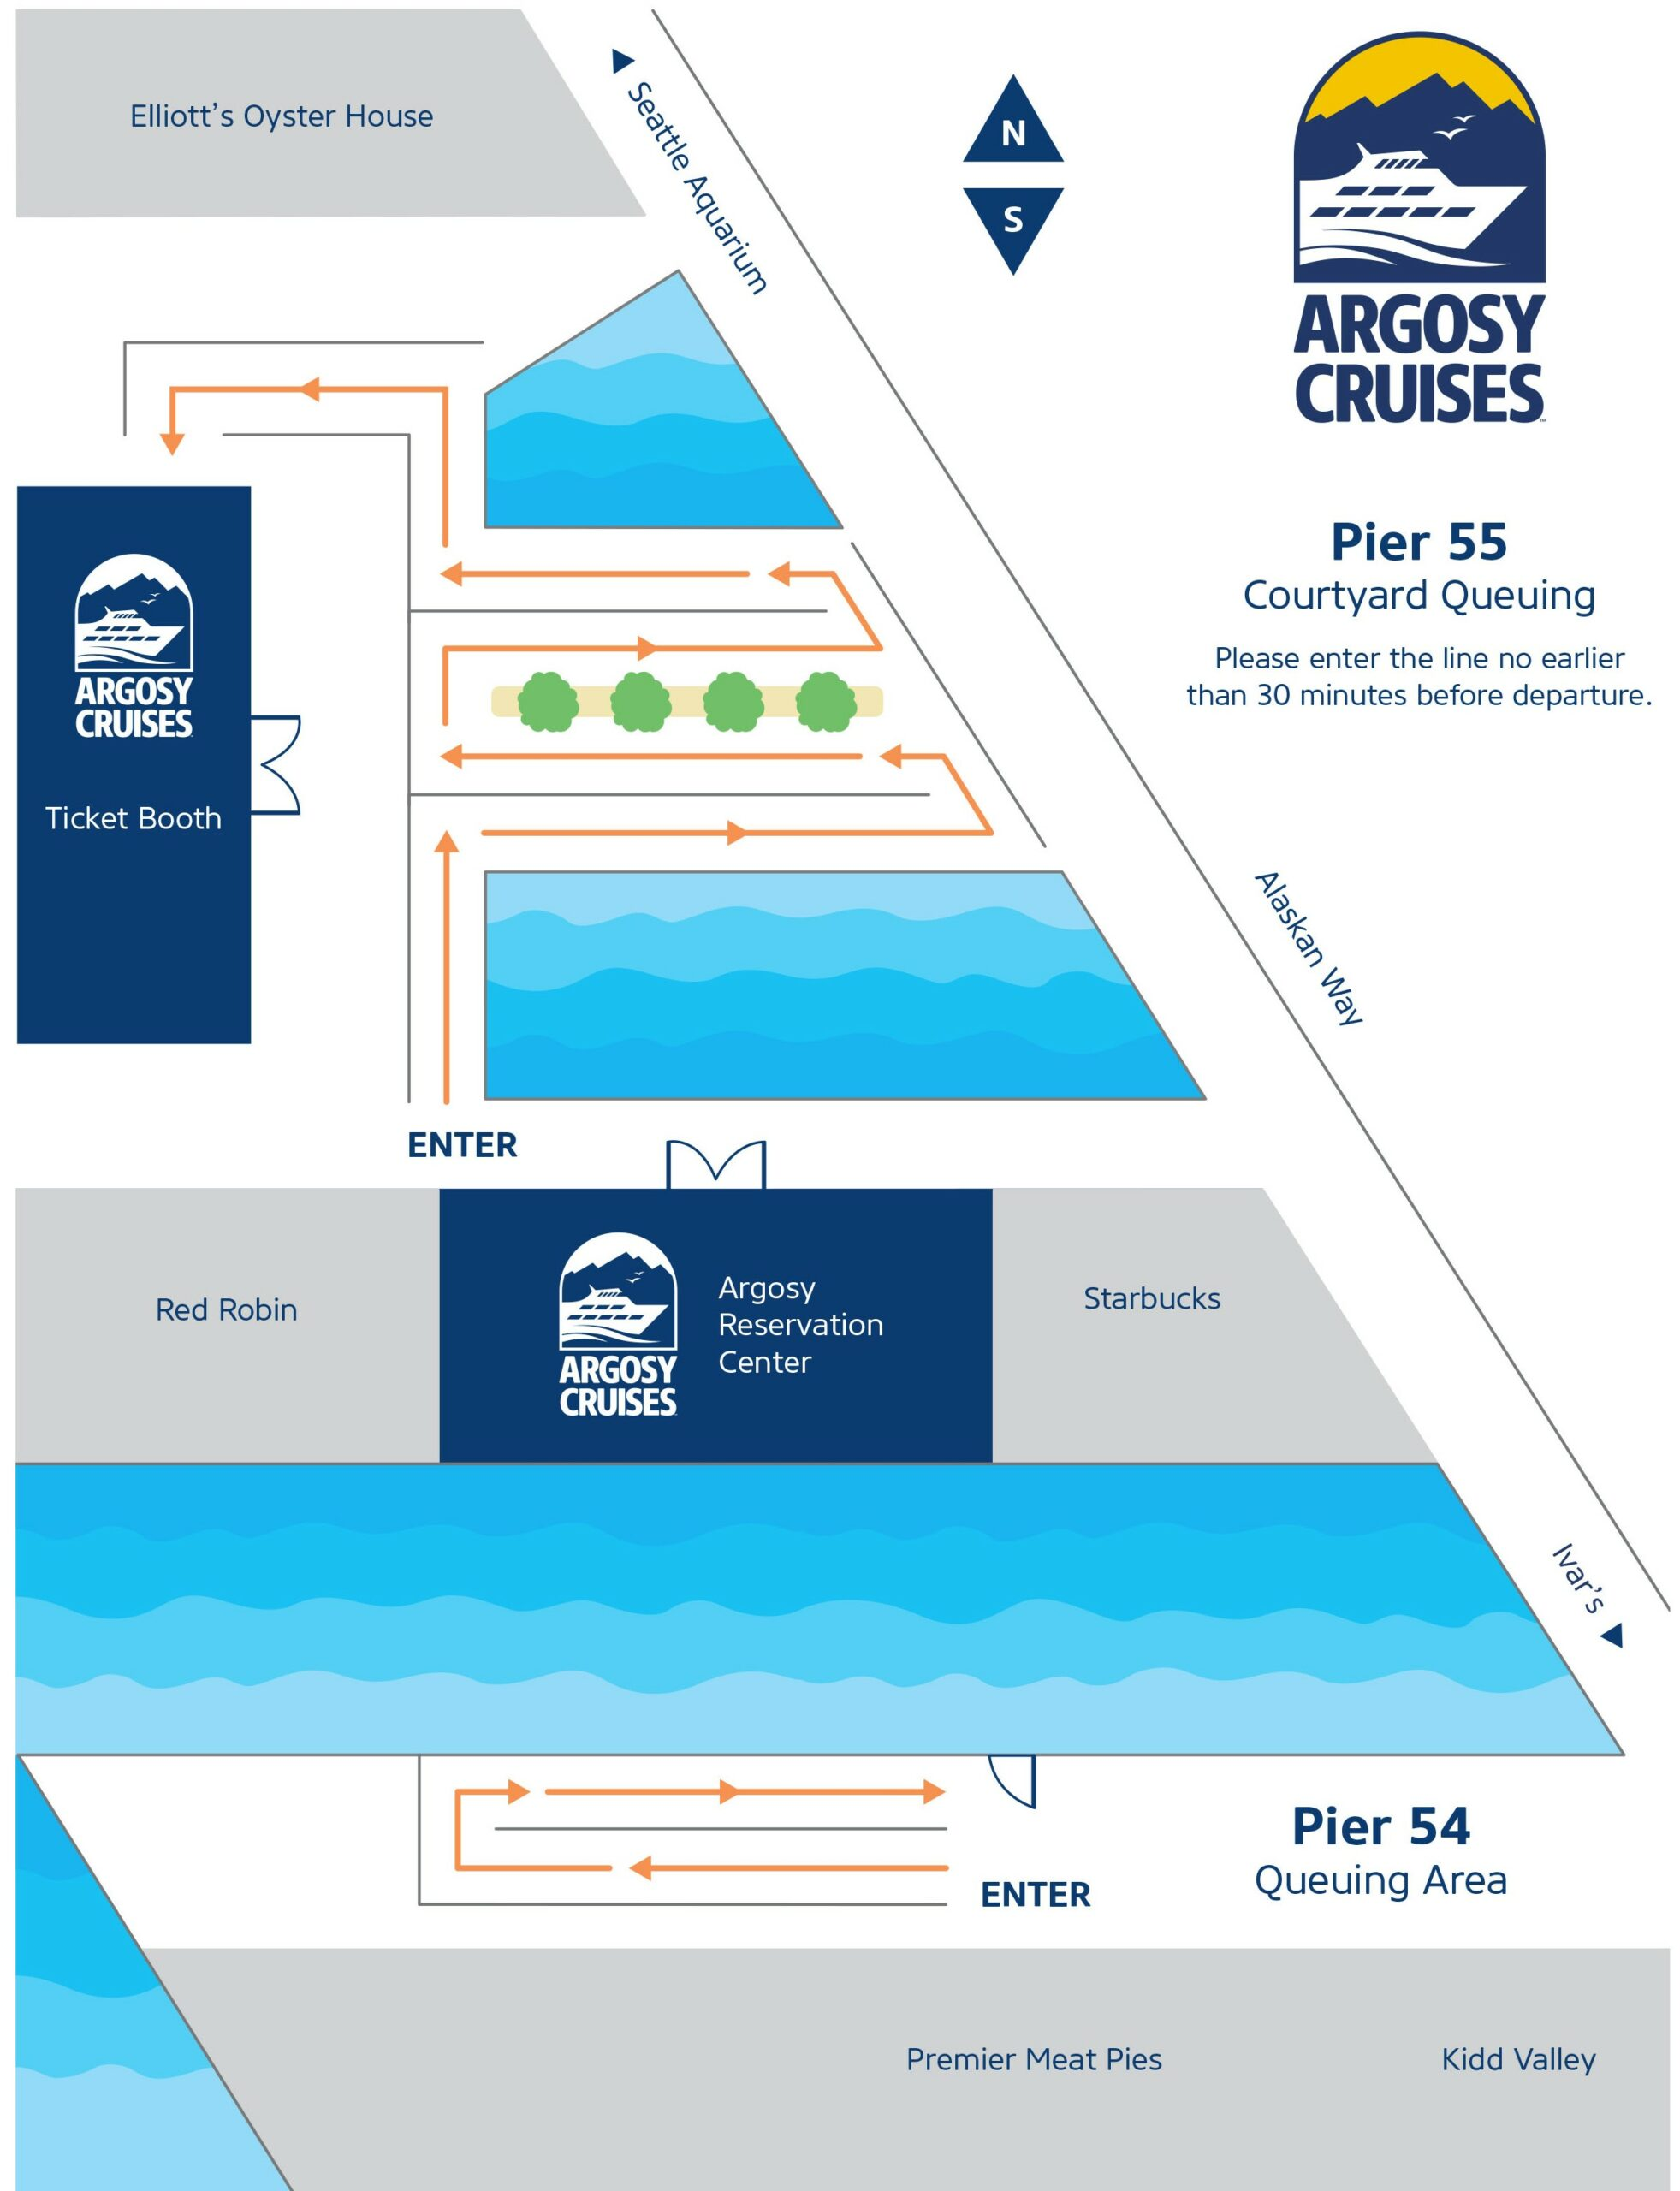 Map showing boarding area on Pier 55 and Pier 54